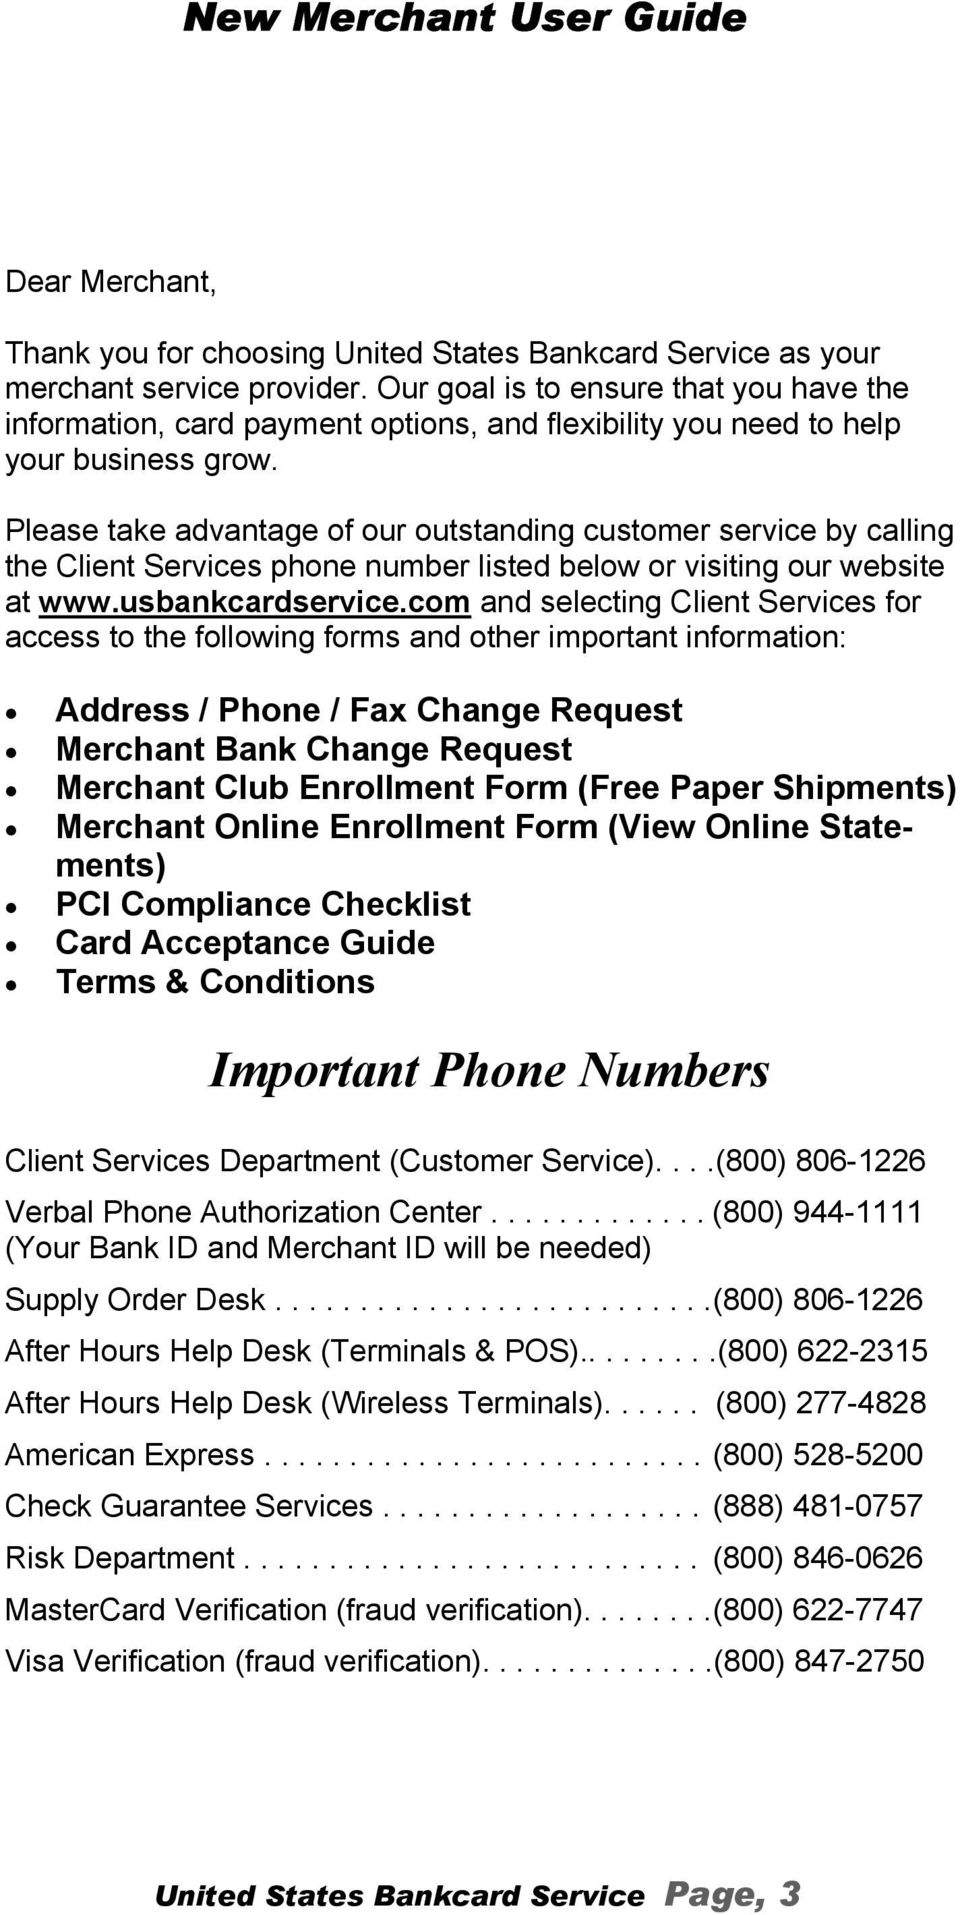 Please take advantage of our outstanding customer service by calling the Client Services phone number listed below or visiting our website at www.usbankcardservice.